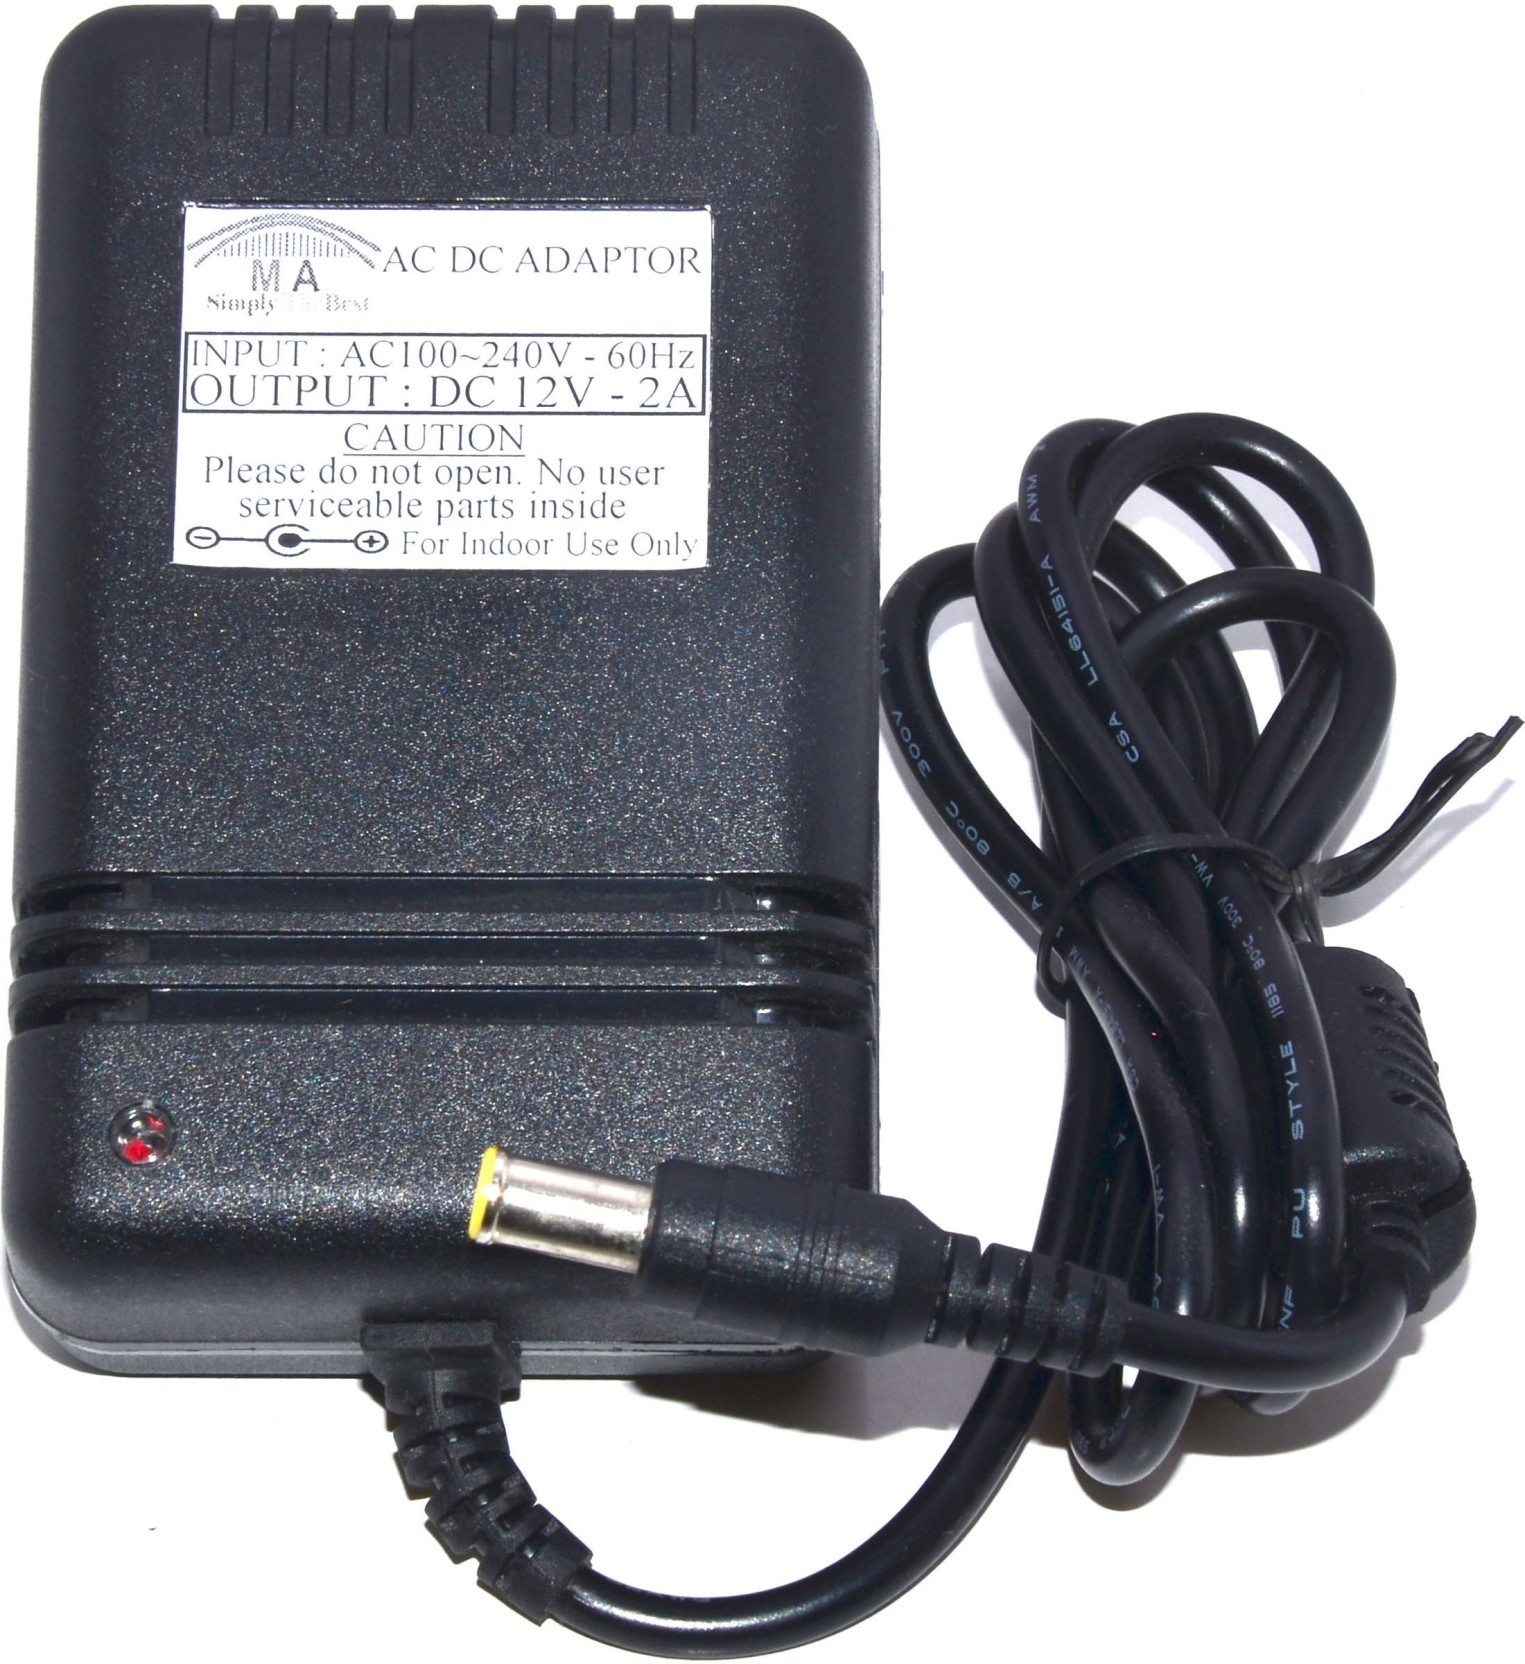 Ma Dc 12v 2apower Adaptor For Lg Lcd Monitor And Other 24 W Adapter Electro Help 32 Inch Philips Tv Power Supply Smps Schematic Share